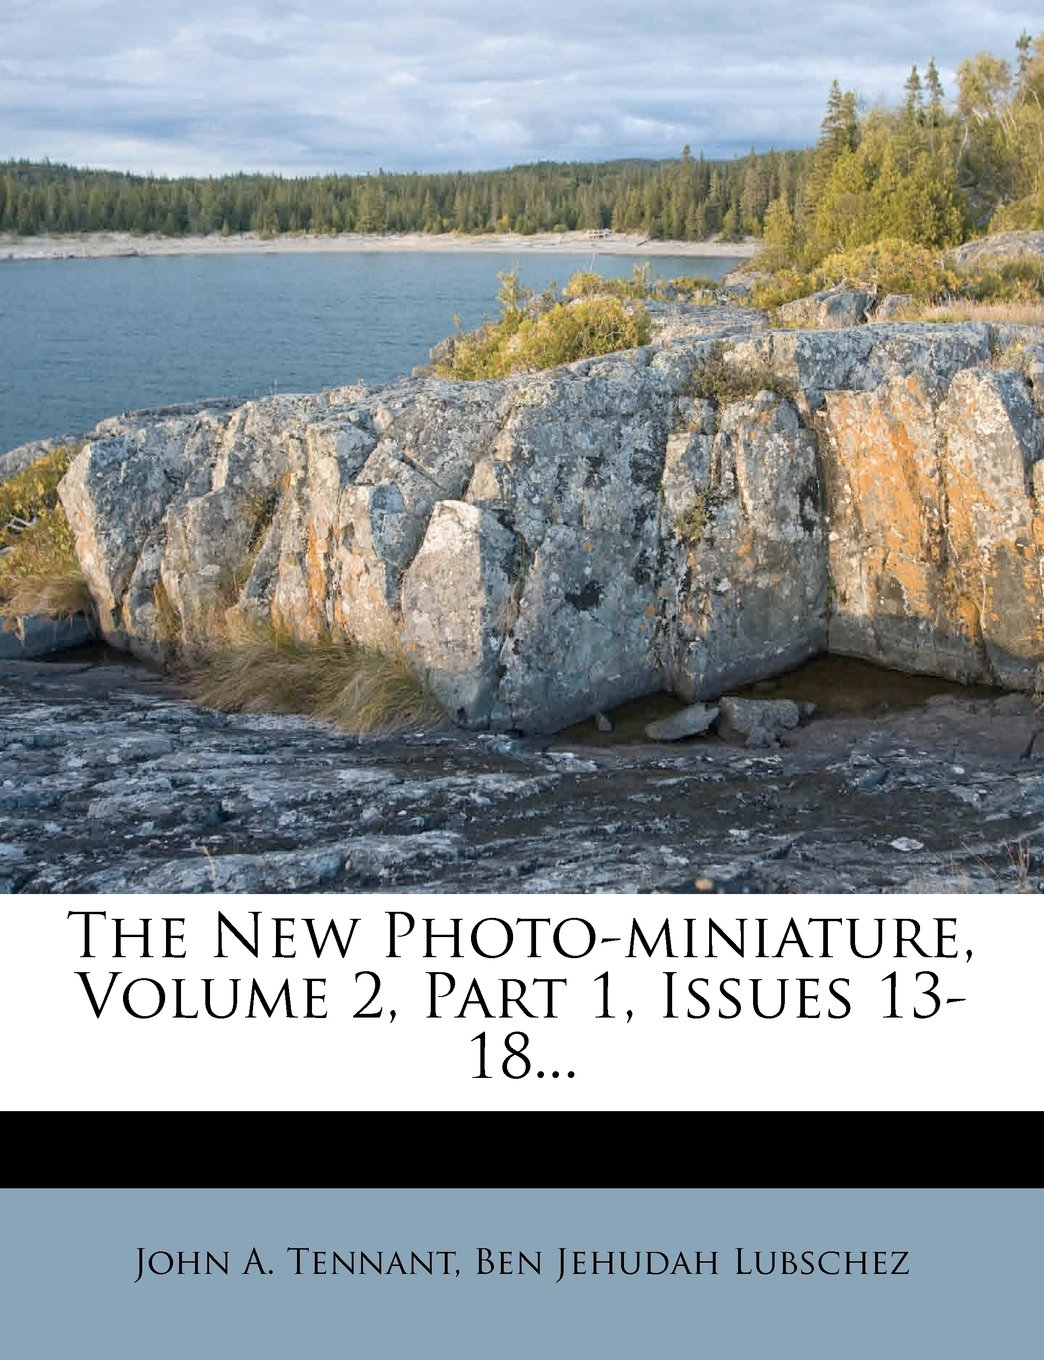 Download The New Photo-miniature, Volume 2, Part 1, Issues 13-18... ebook